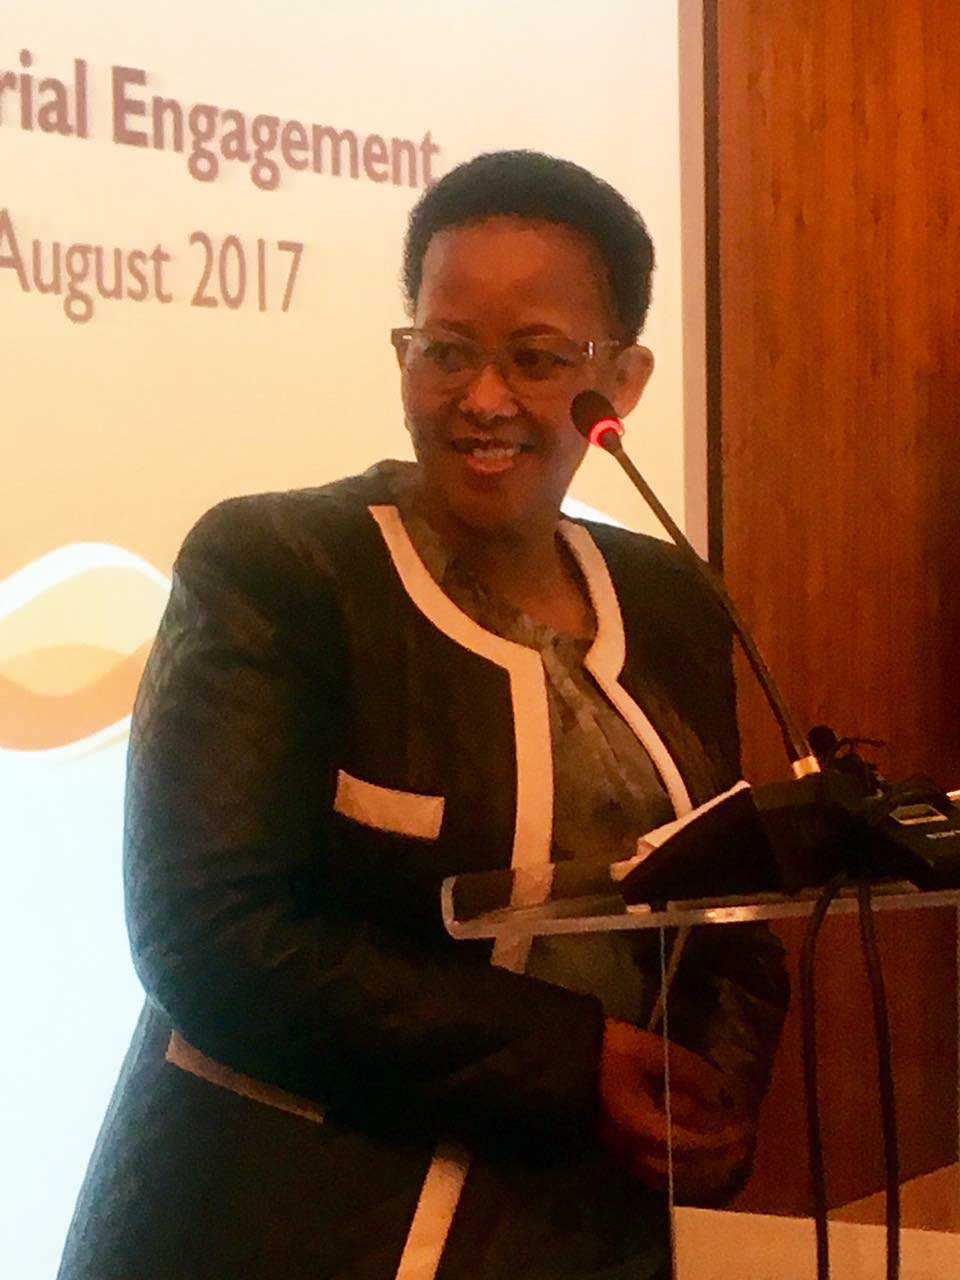 Minister Xasa consults with industry on the National Tourism Sector Strategy